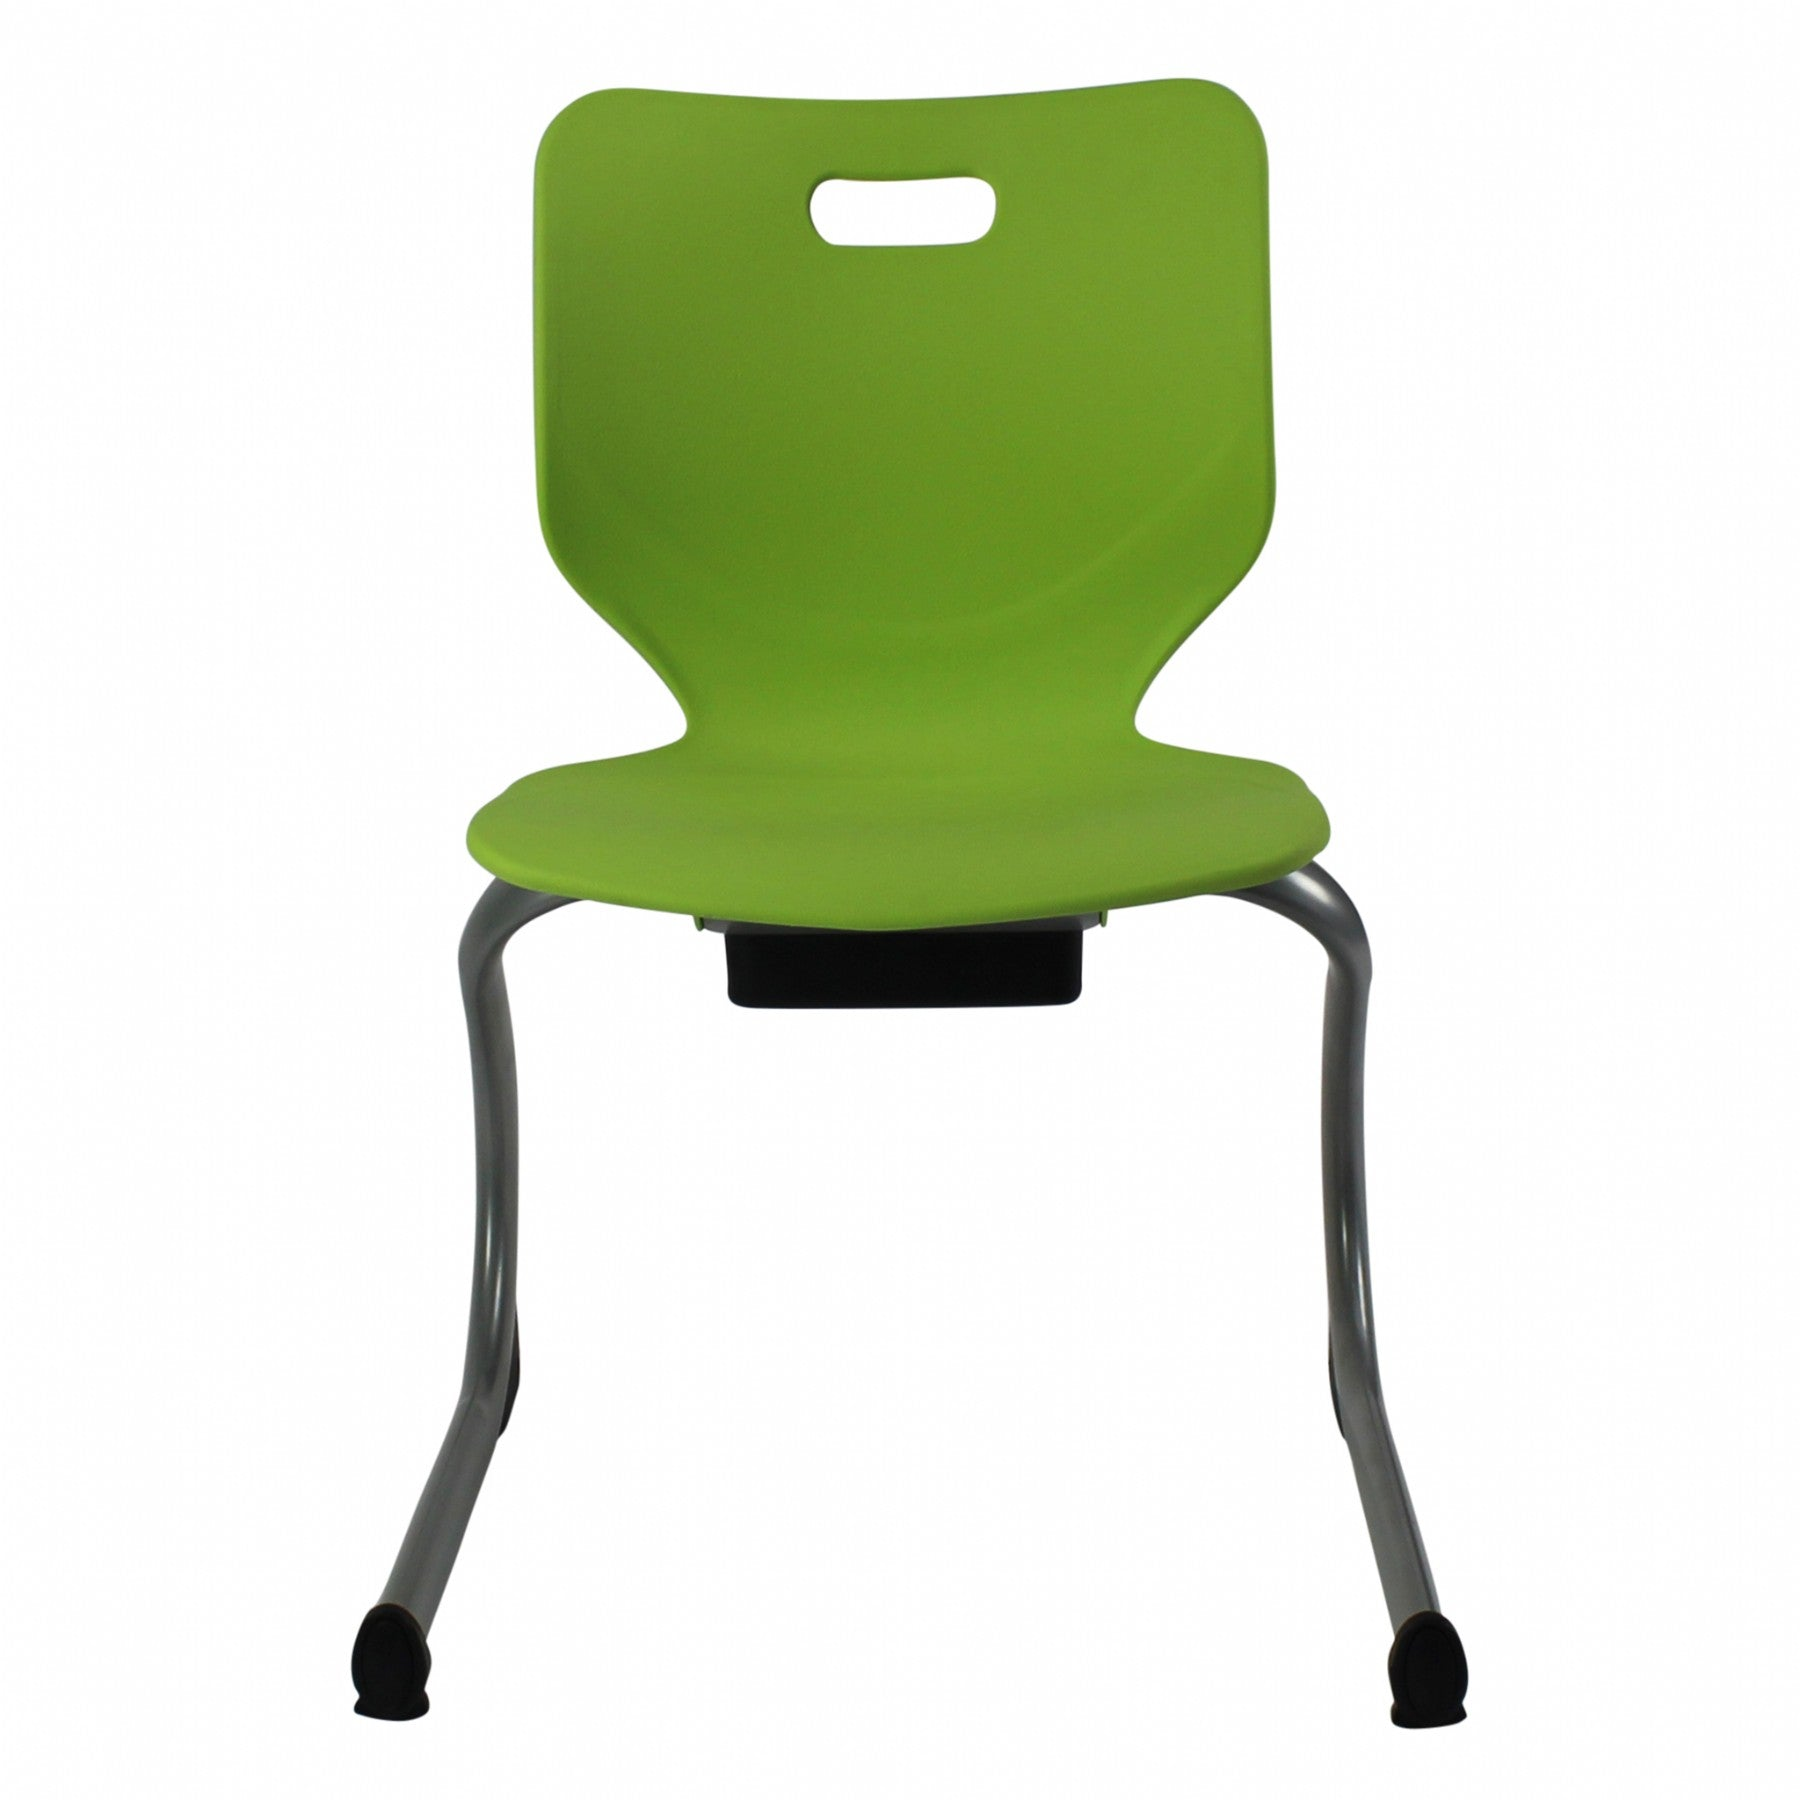 Mobel Form Chair Green